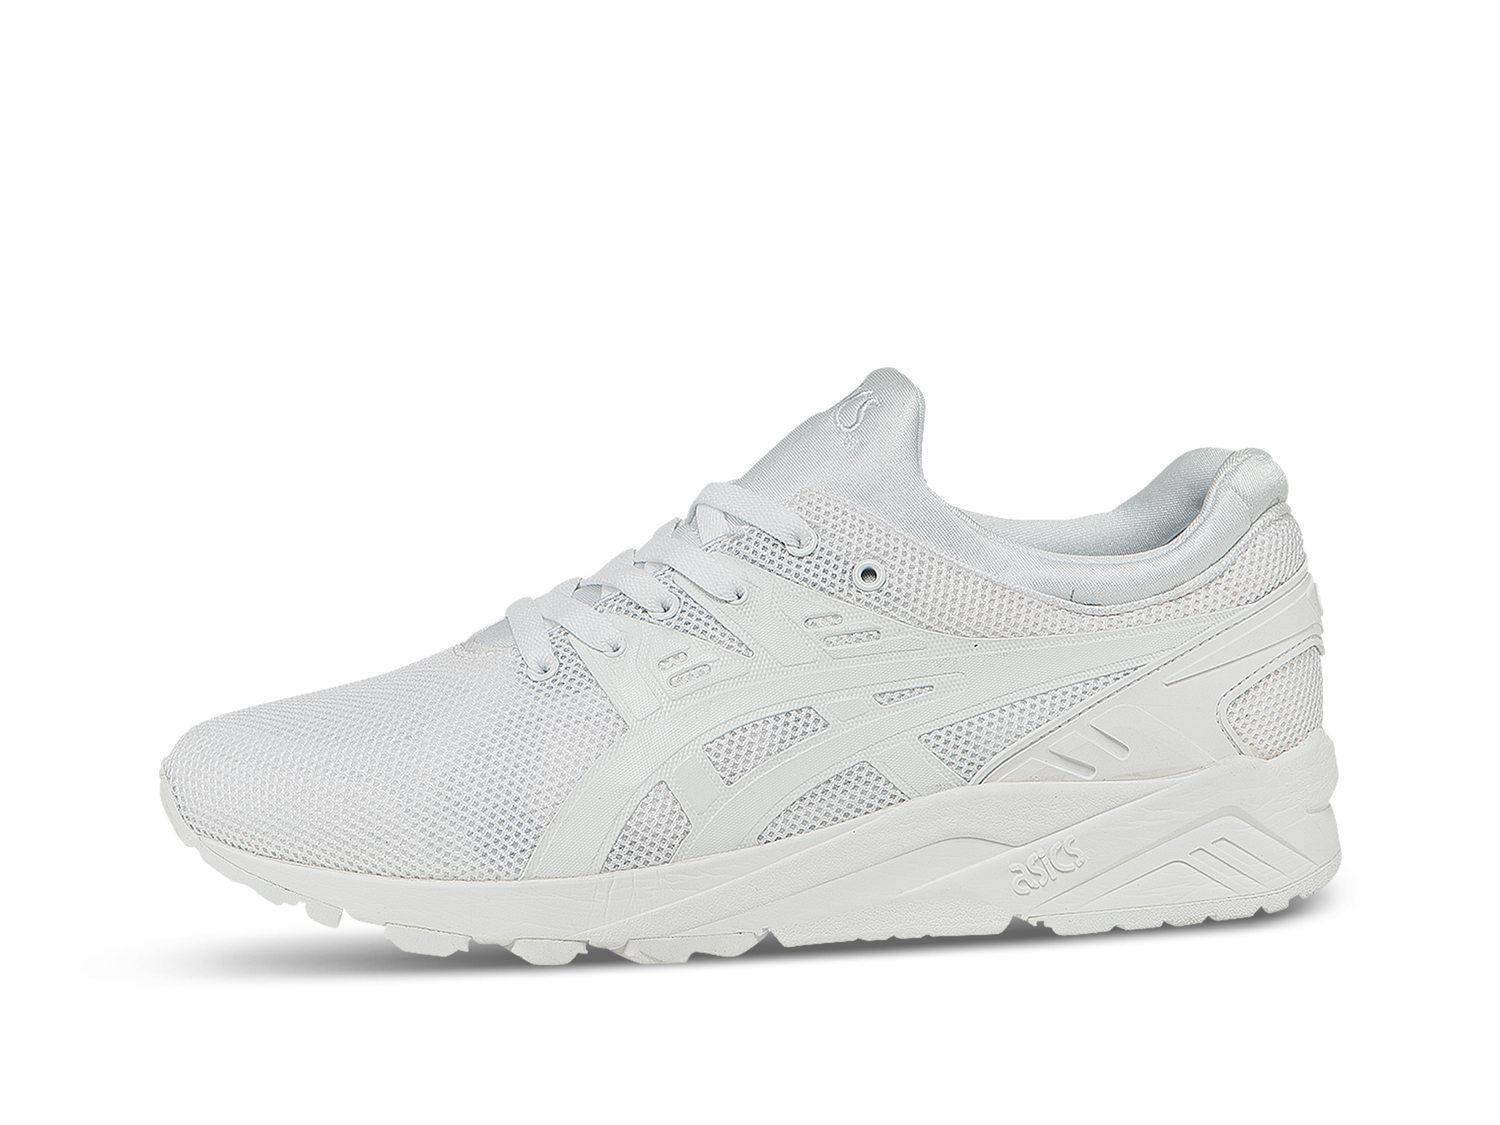 Asics Tiger Gel Kayano Trainer Evo Injection Pack 2